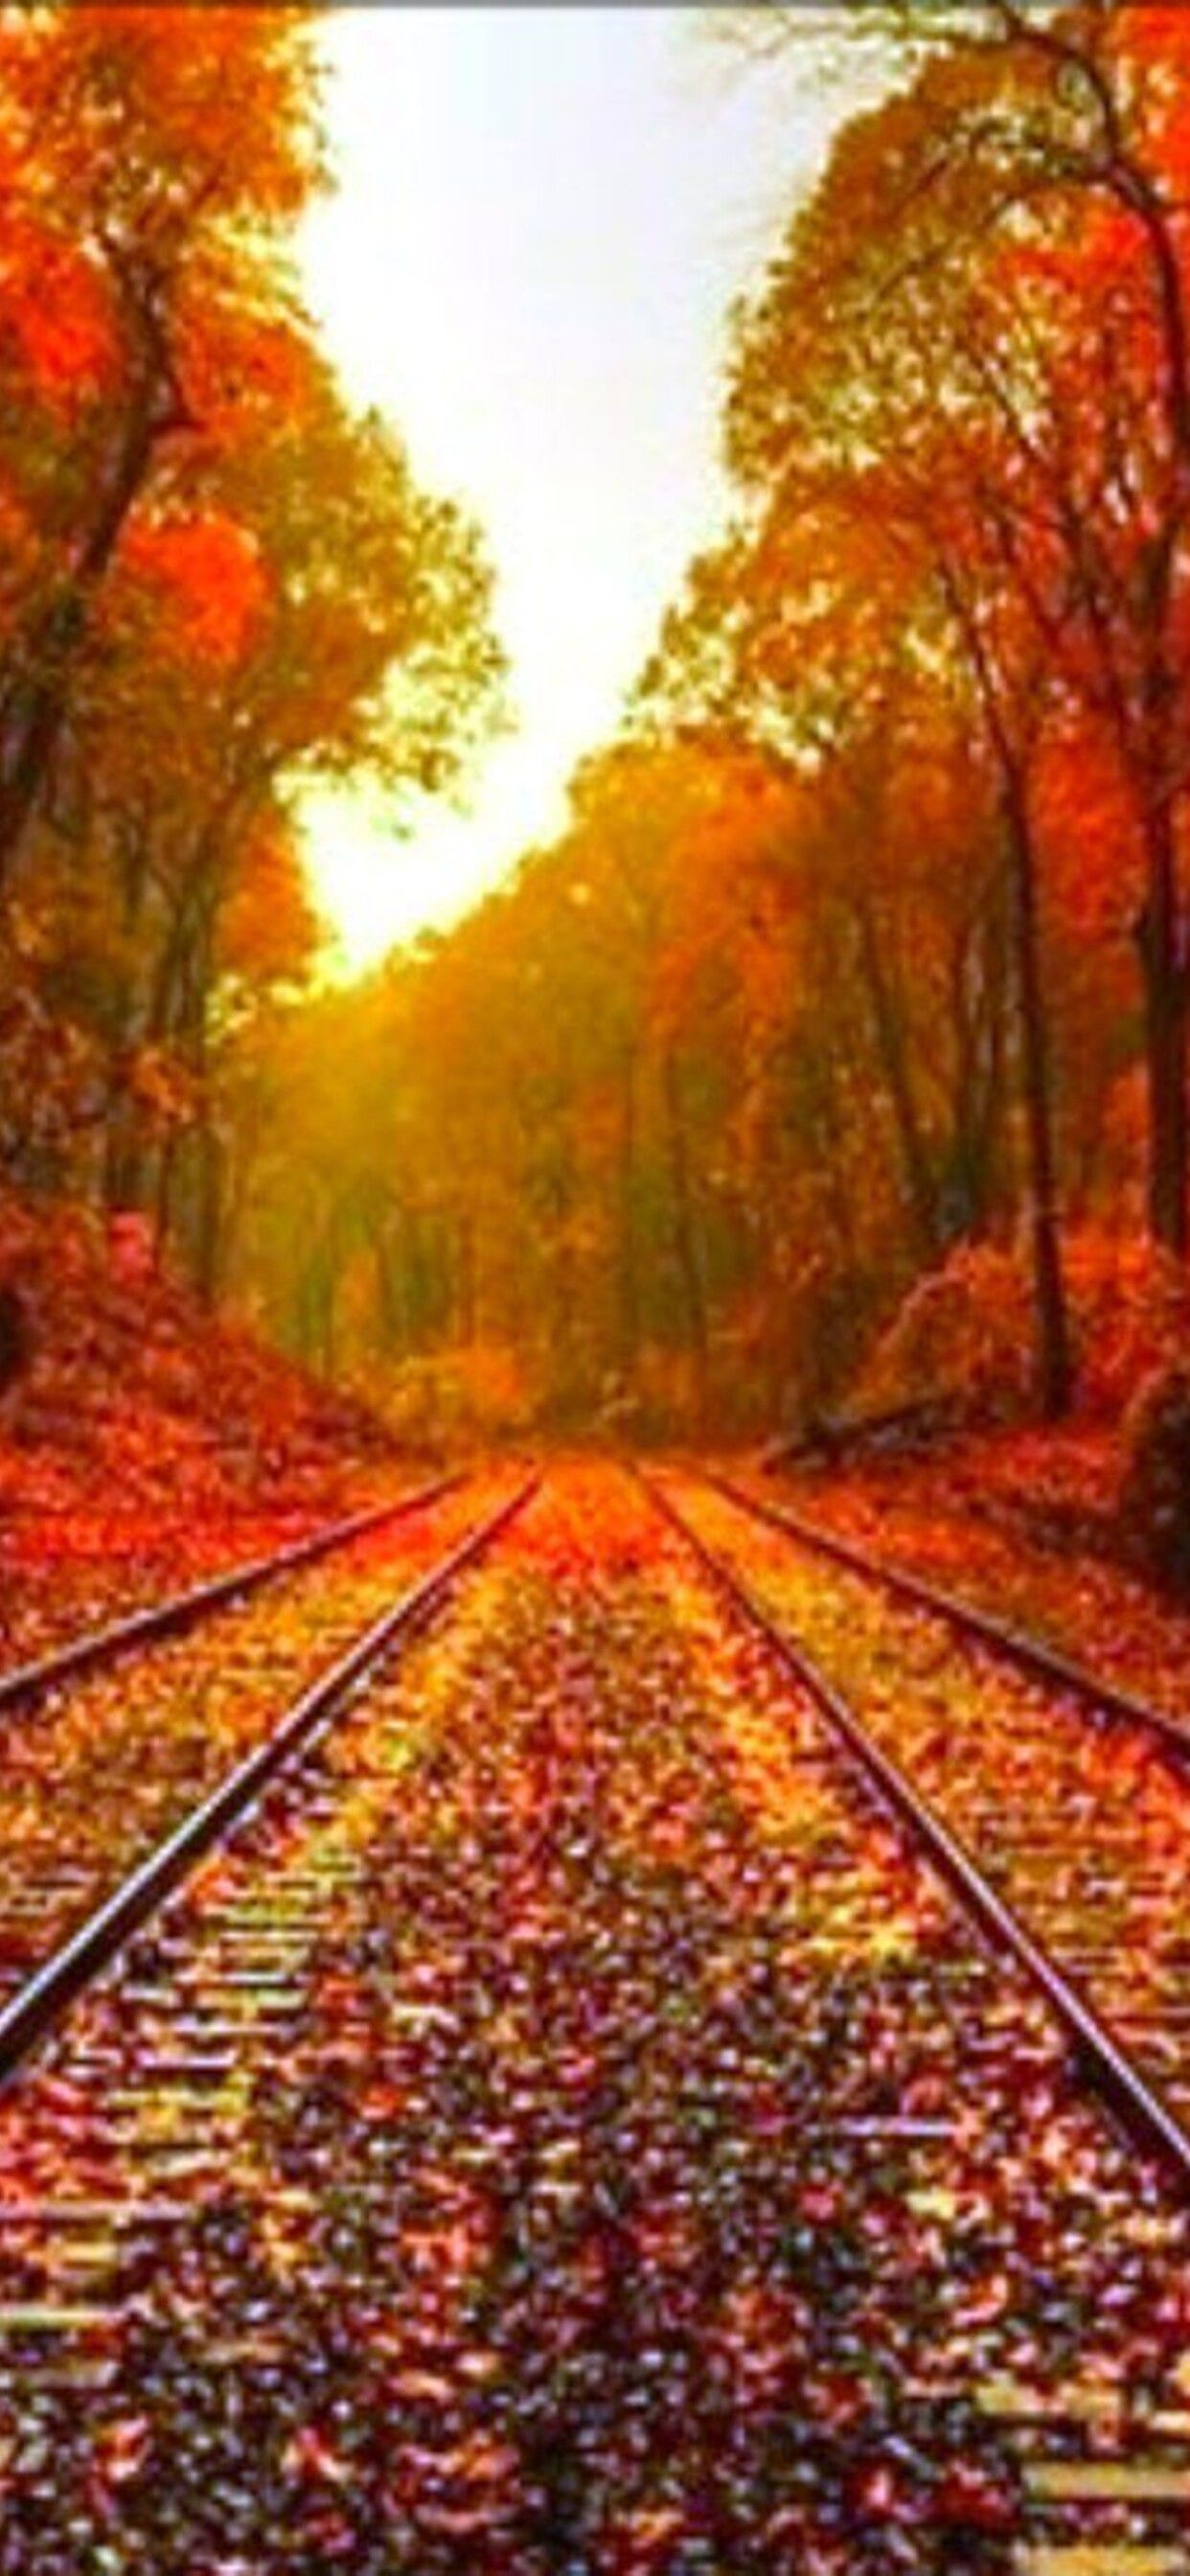 Autumn Iphone 11 Pro Max Wallpapers Wallpaper Cave